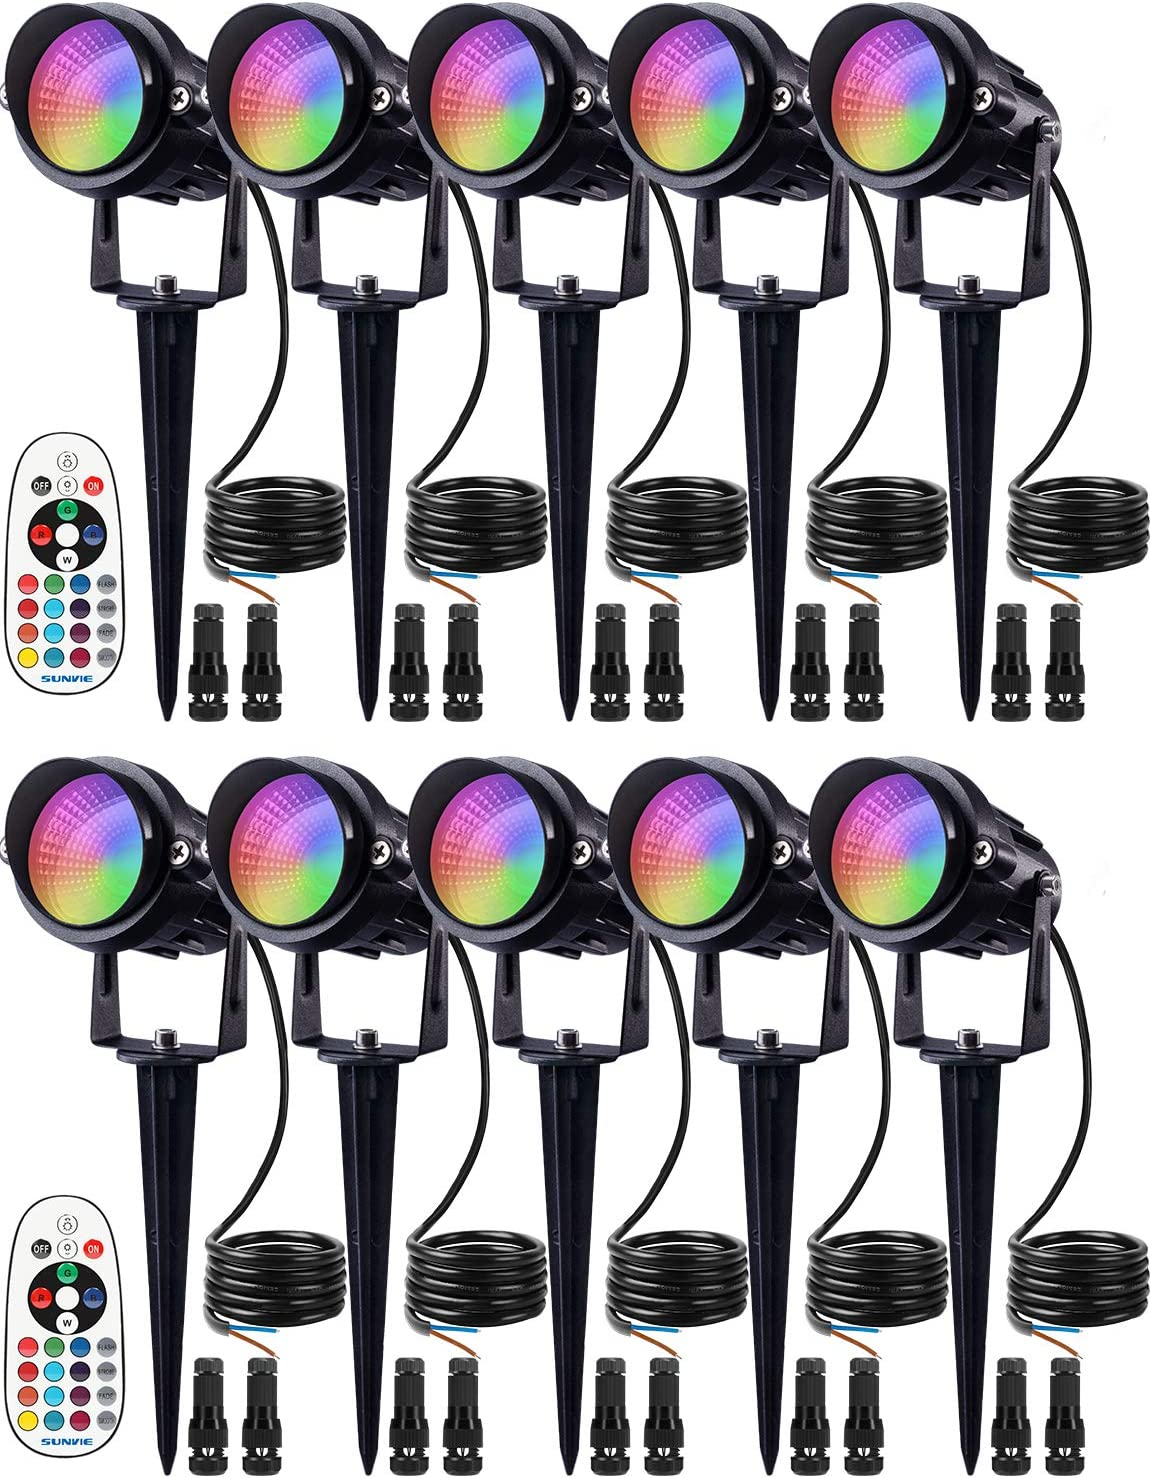 SUNVIE 12W Low Voltage Landscape Lighting RGB Color Changing LED Landscape Lights Remote Control Waterproof Spotlight Garden Patio Spotlights Decorative Lamp for Outdoor Indoor(10 Pack with Connector)